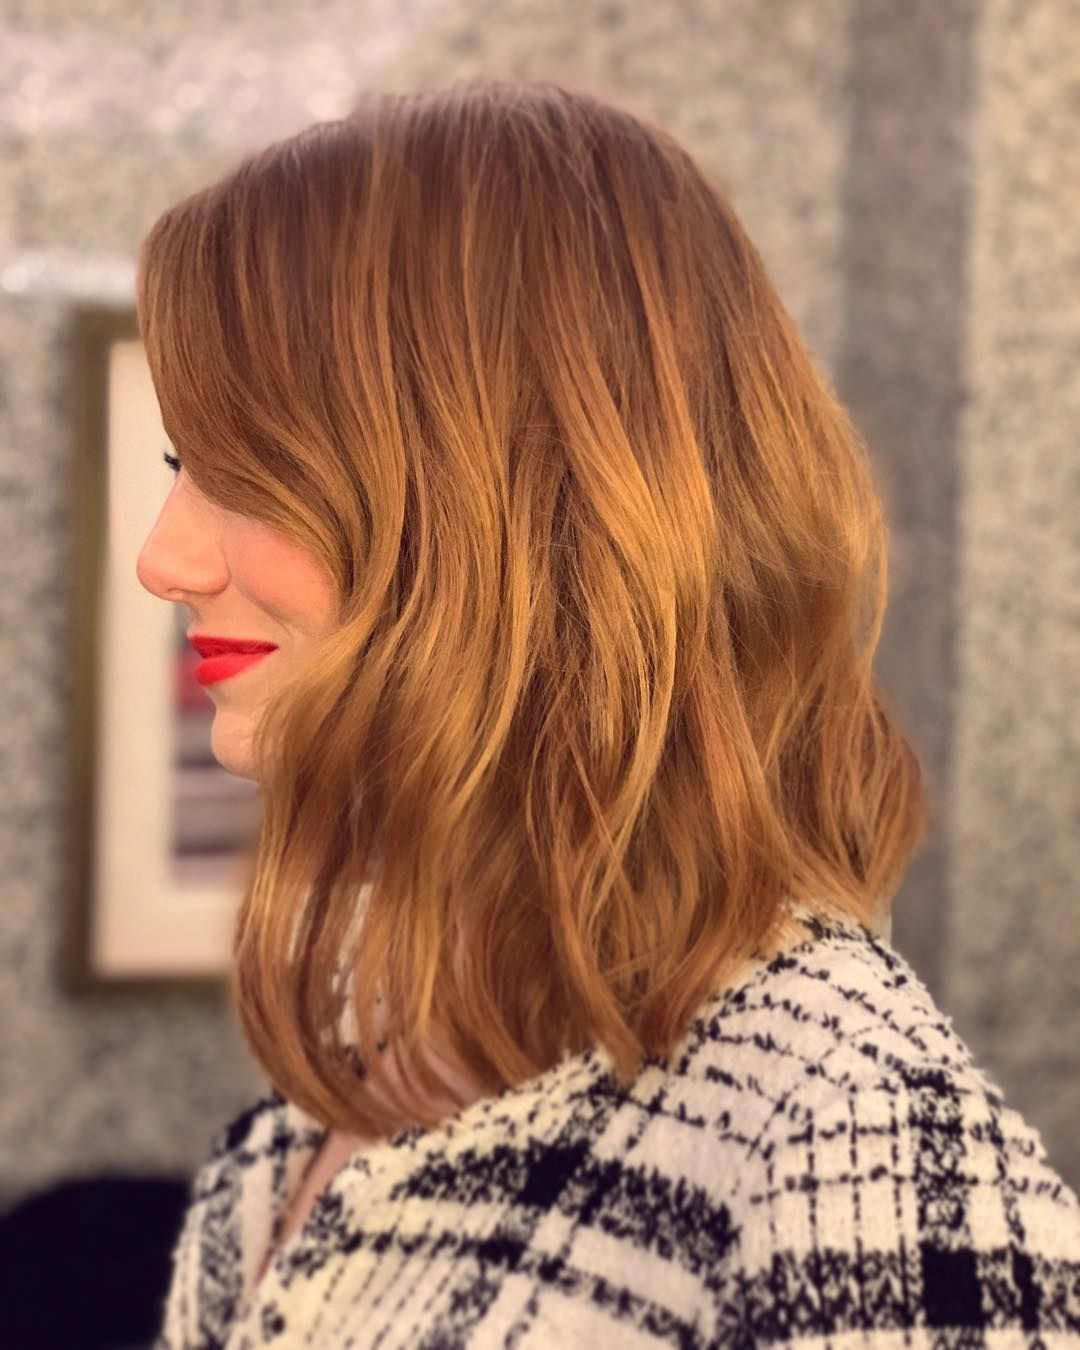 Emma Stone gave her own spin on the hottest haircut of 9. See